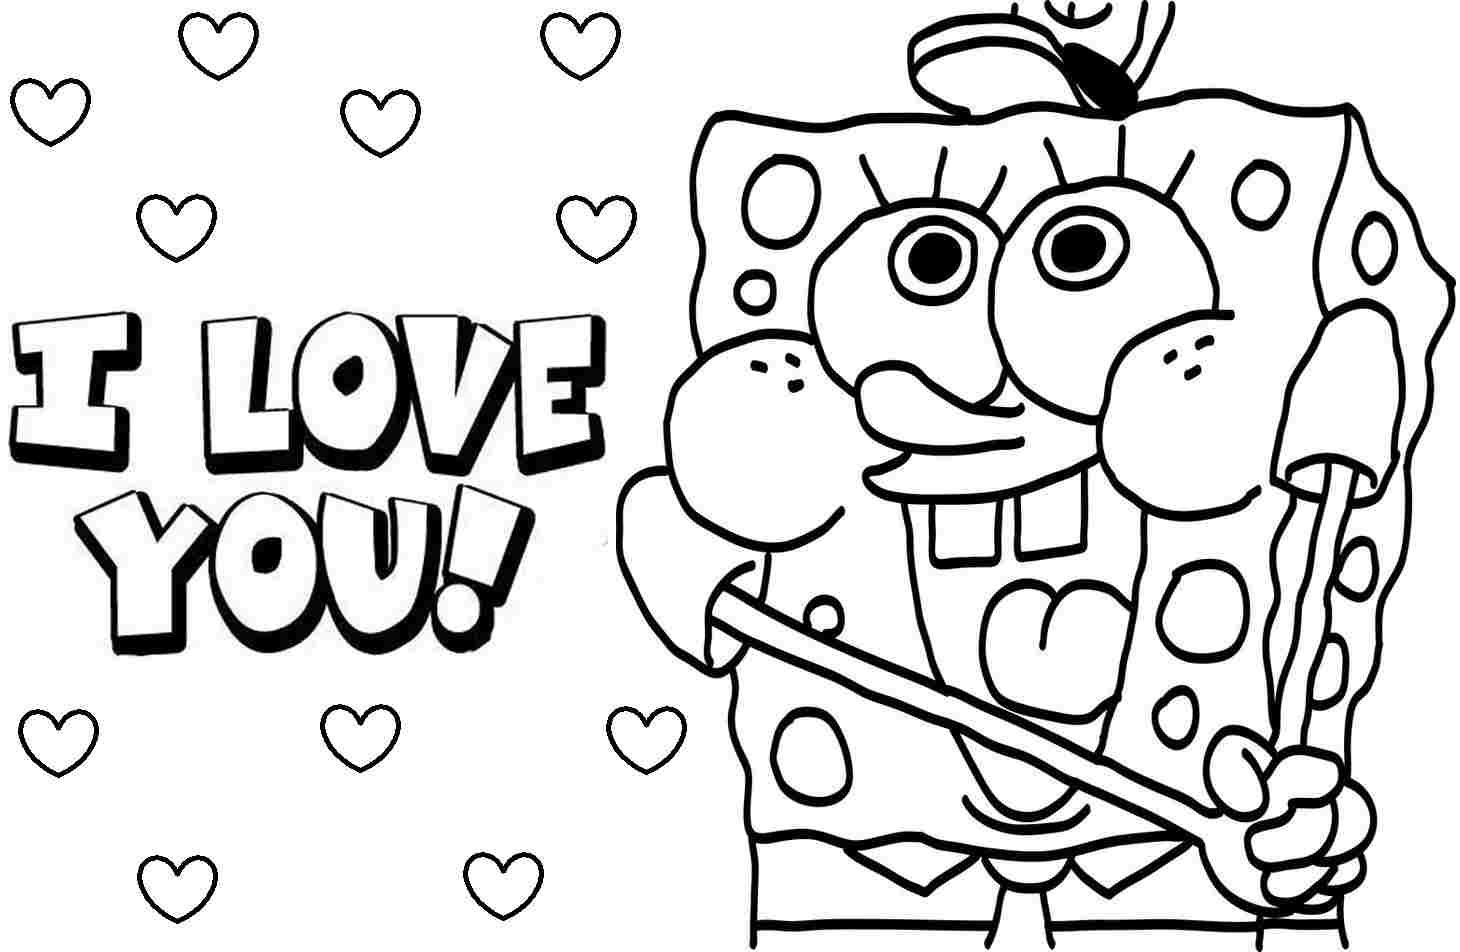 Printable Spongebob Coloring Pages Ideas Free Coloring Sheets Printable Valentines Coloring Pages Coloring Pages For Teenagers Valentines Day Coloring Page